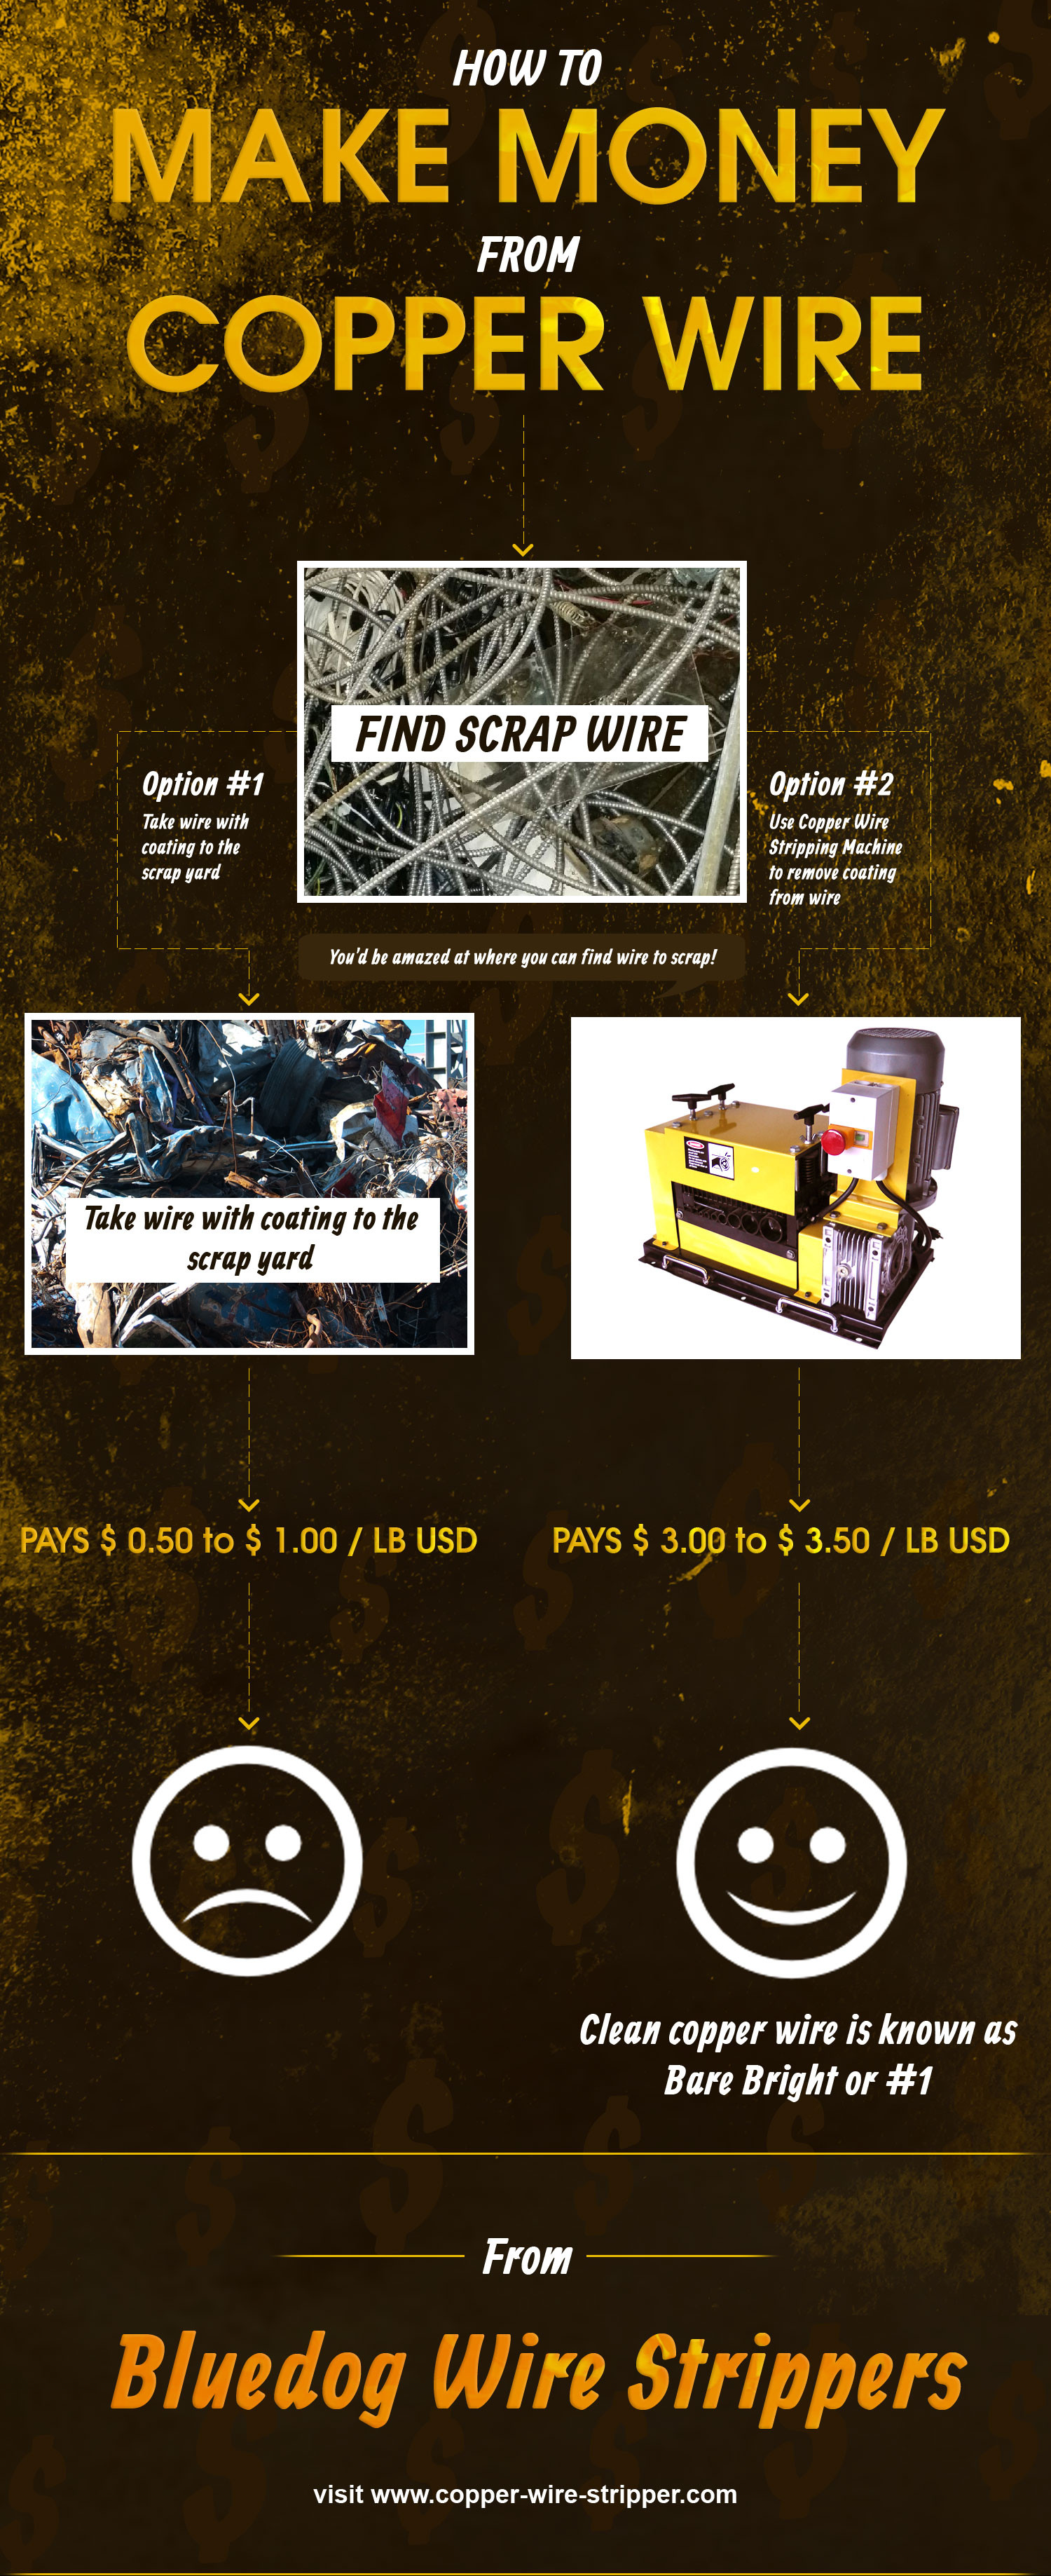 How to make money from copper wire Infographic